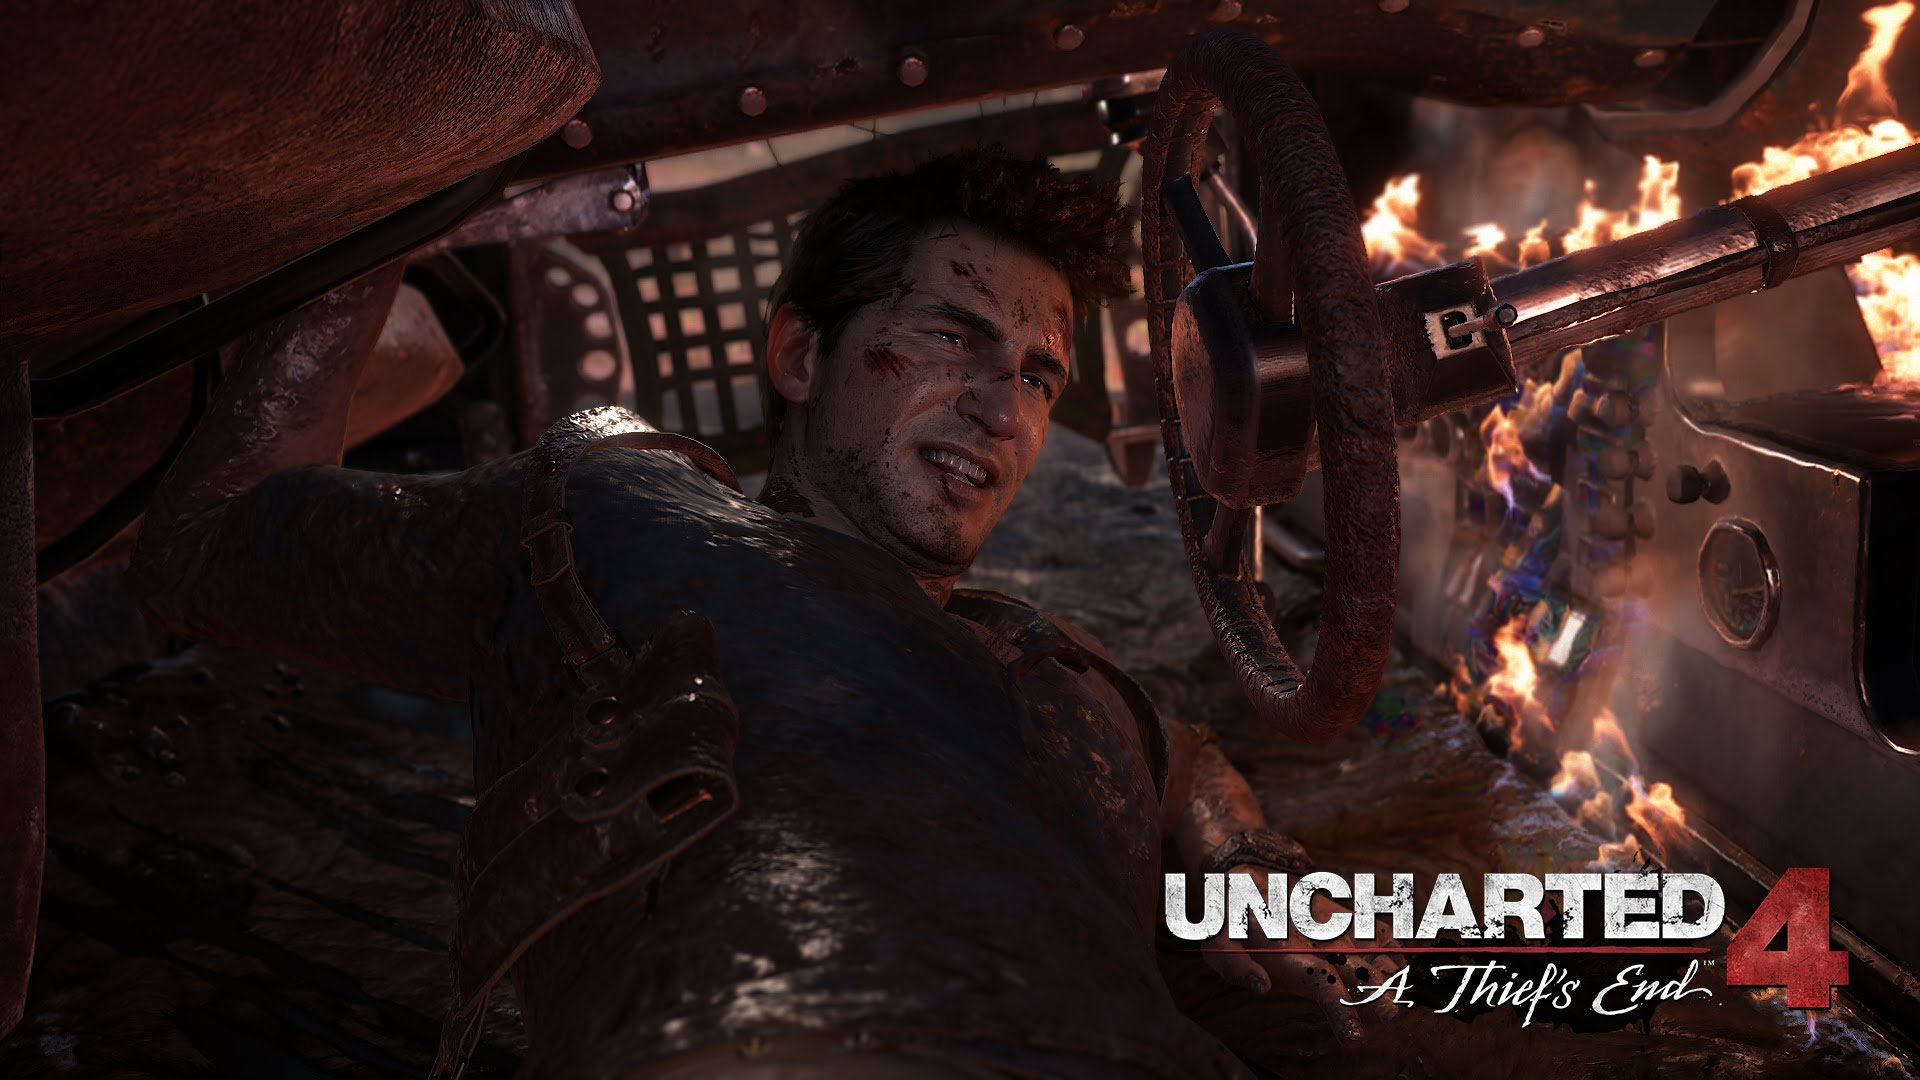 Wallpaper Uncharted 4: A Thief's End Video game, fight